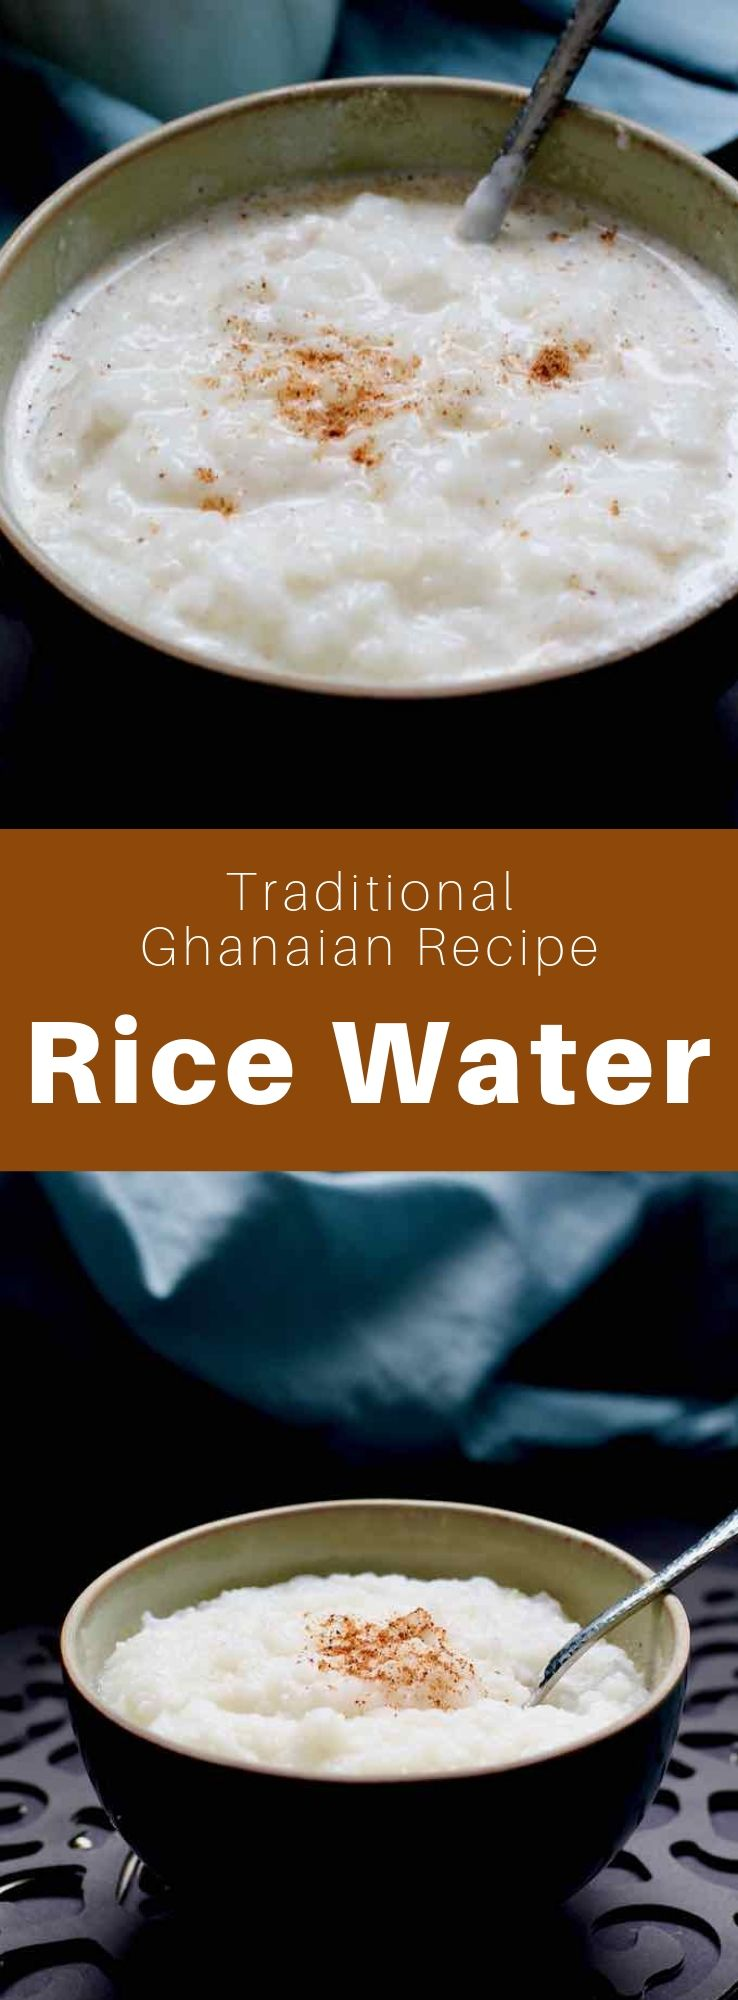 Rice water is a traditional Ghanaian dessert that consists of a rice porridge with nutmeg, but also other toppings to taste. #Ghana #GhanaianCuisine #GhanaianFood #GhanaianRecipe #AfricanCuisine #AfricanFood #AfricanRecipe #WorldCuisine #196flavors